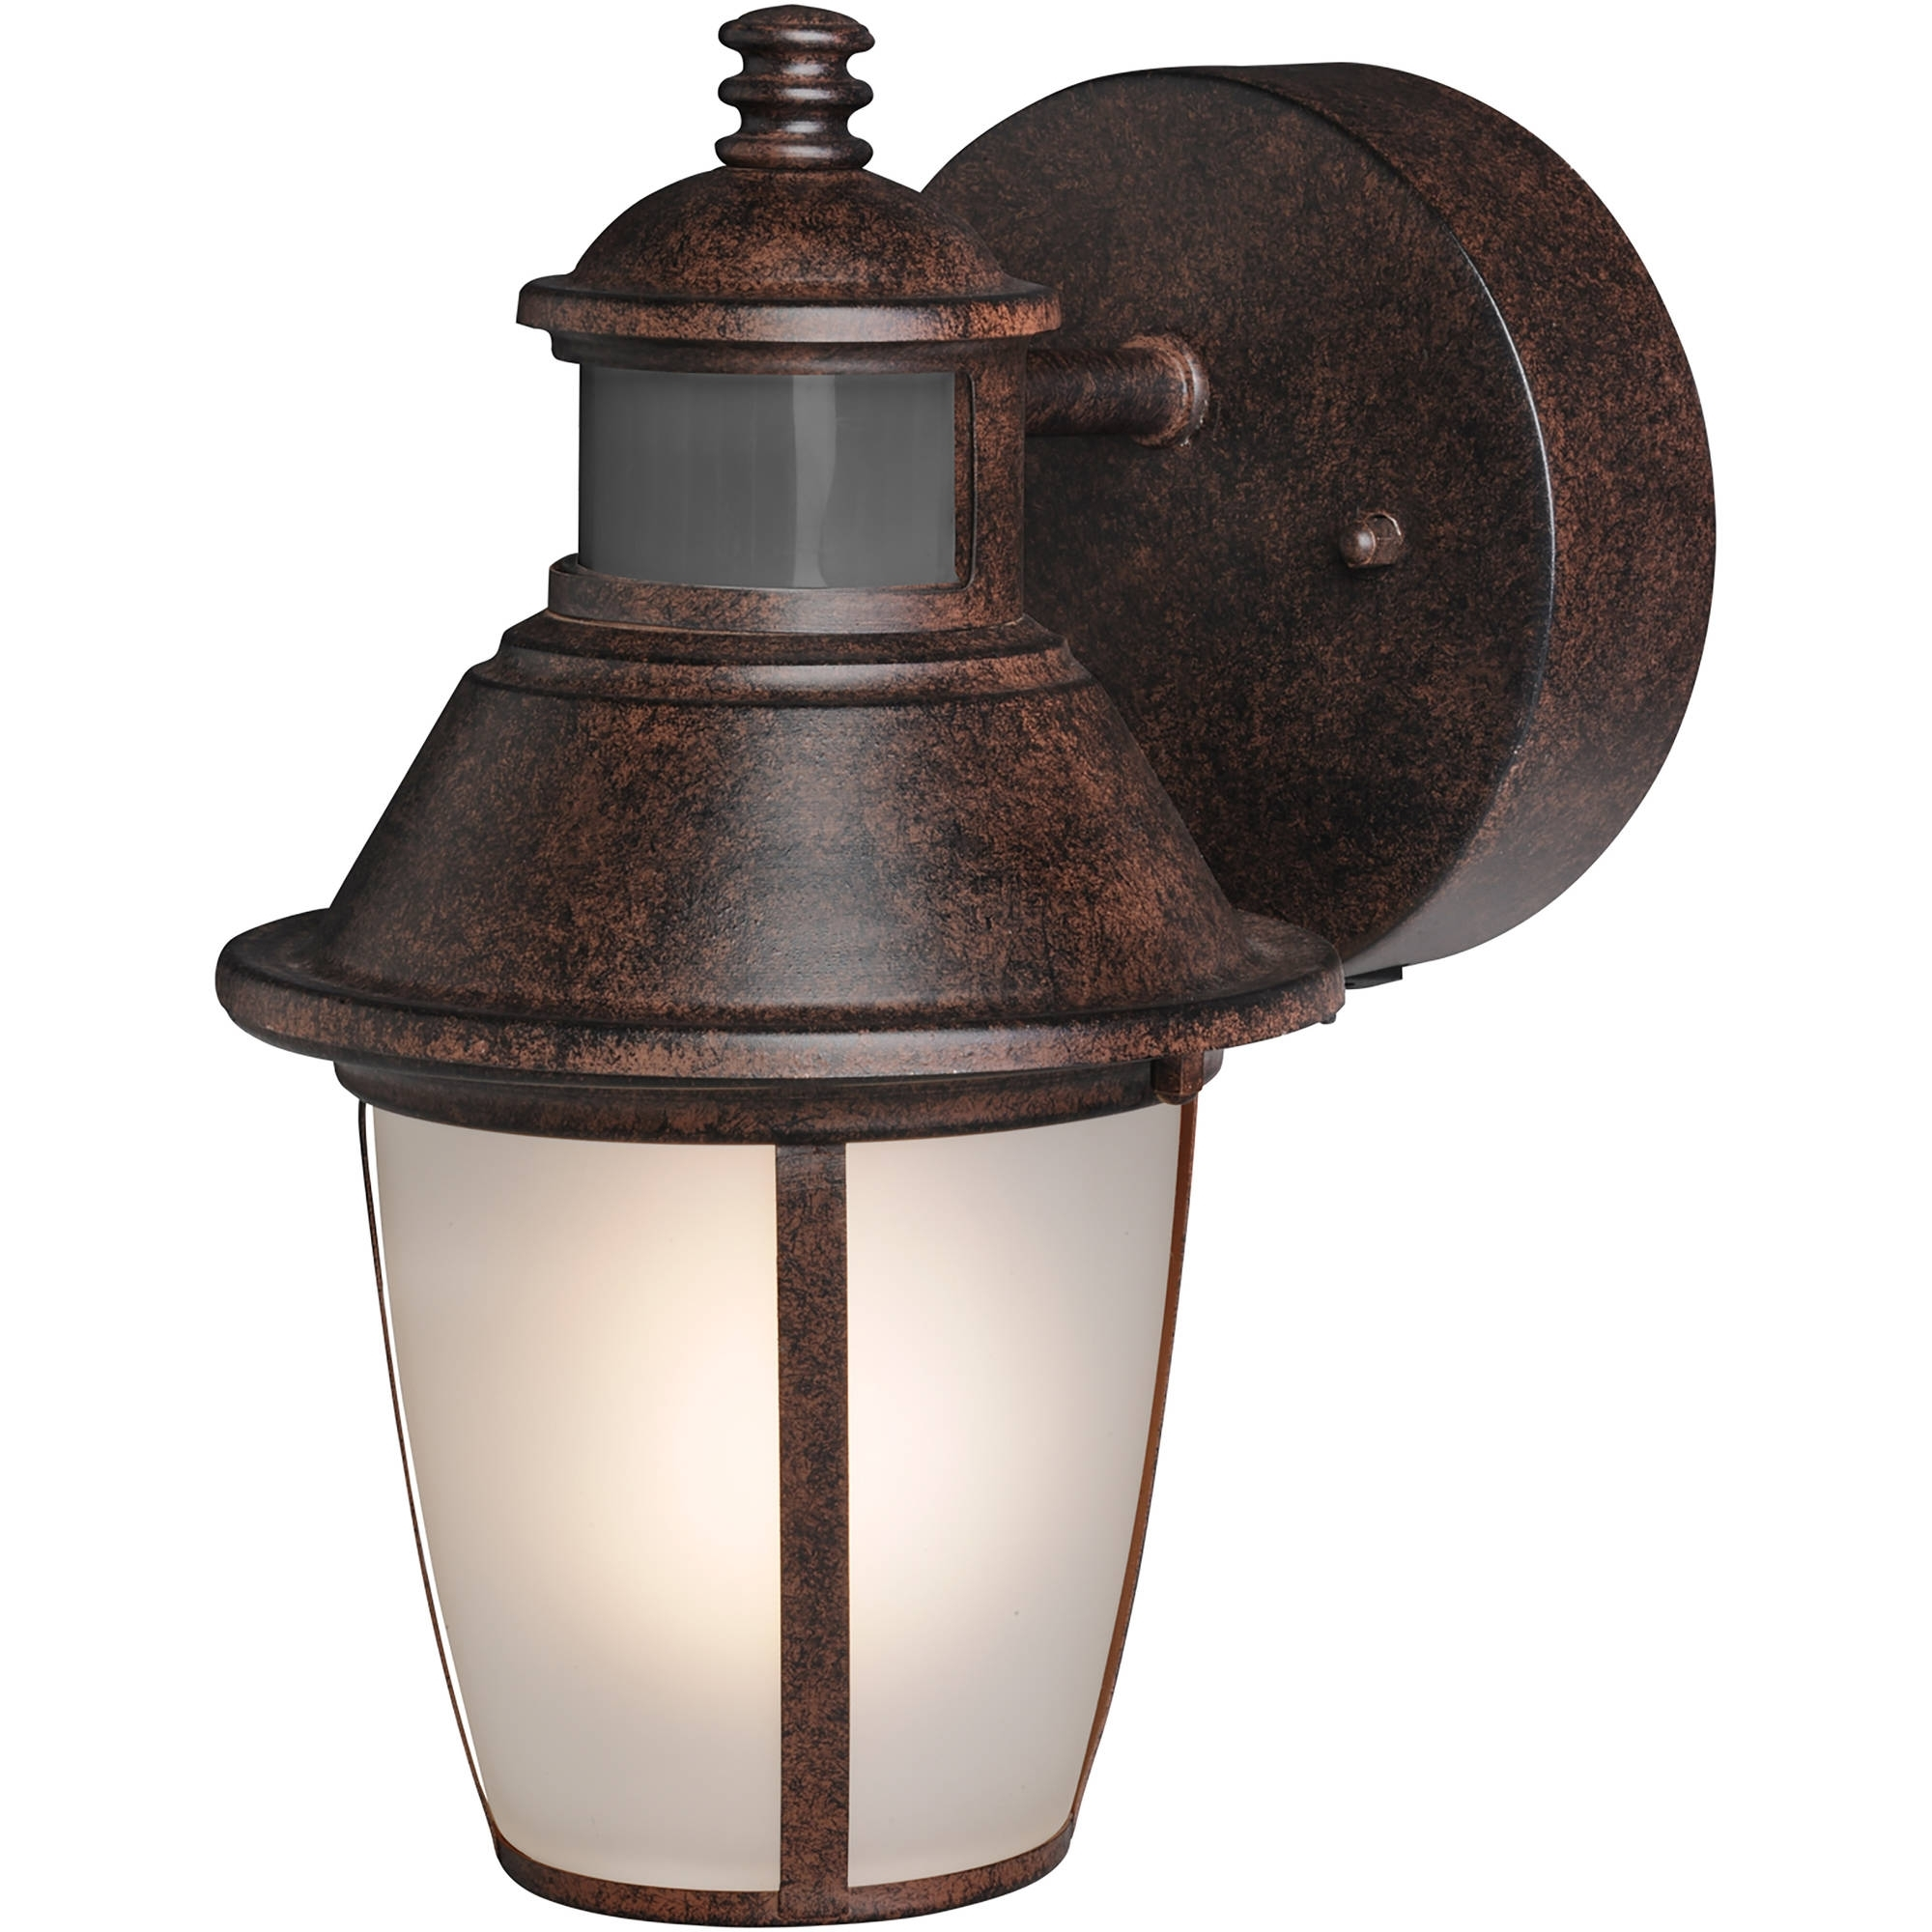 Brink's Led Outdoor Wall Lantern Motion Security Light, Bronze With Most Recent Dusk To Dawn Led Outdoor Wall Lights (View 3 of 20)